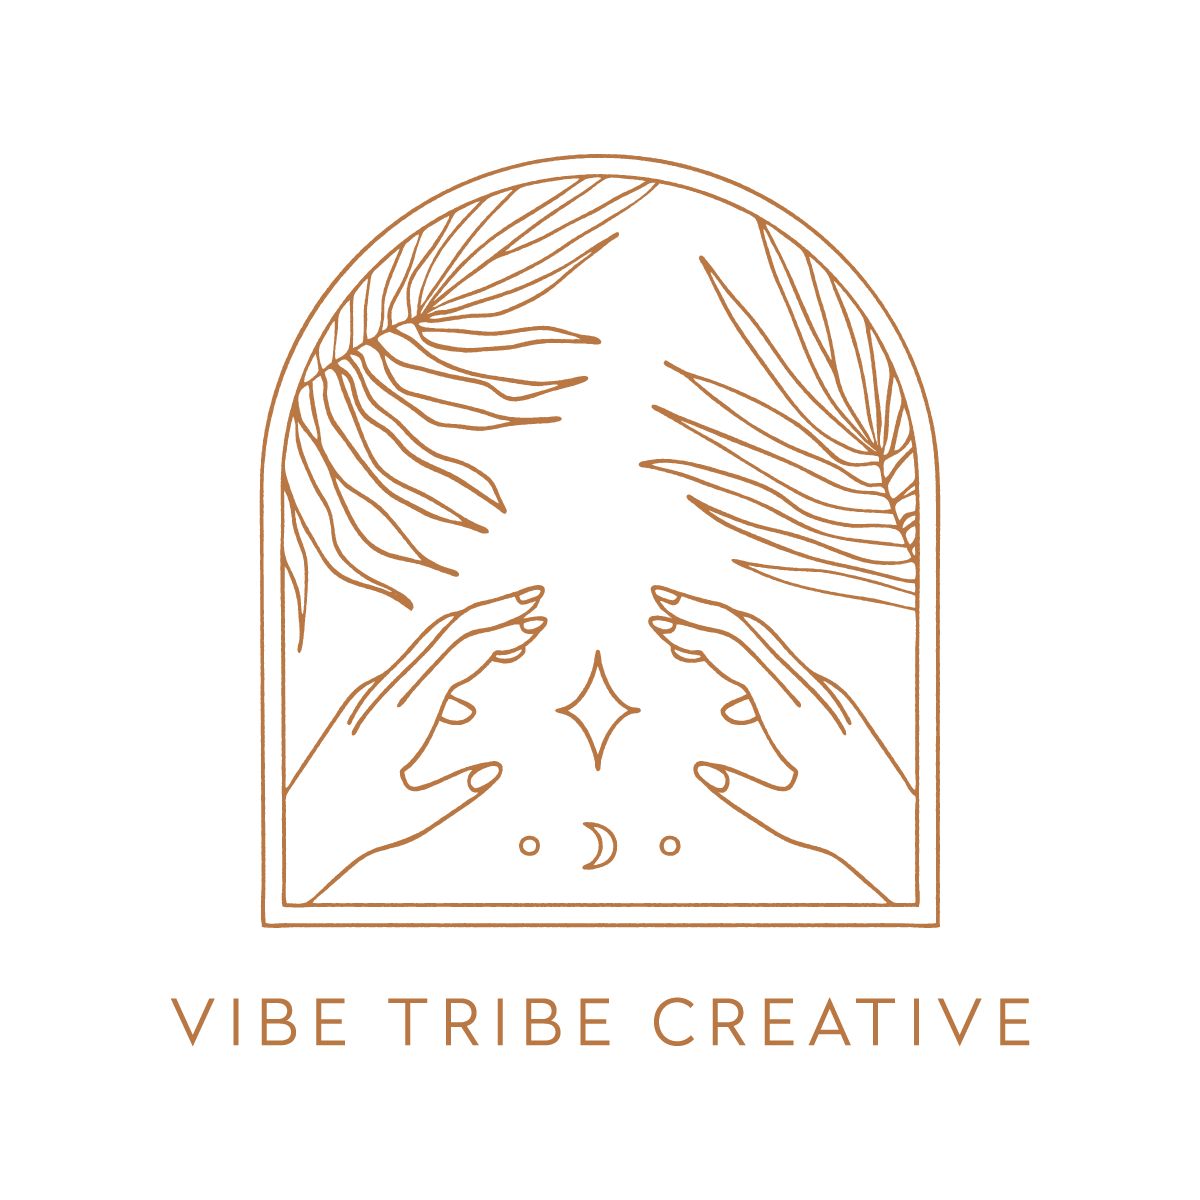 Vibe Tribe Creative - Creative Design Agency